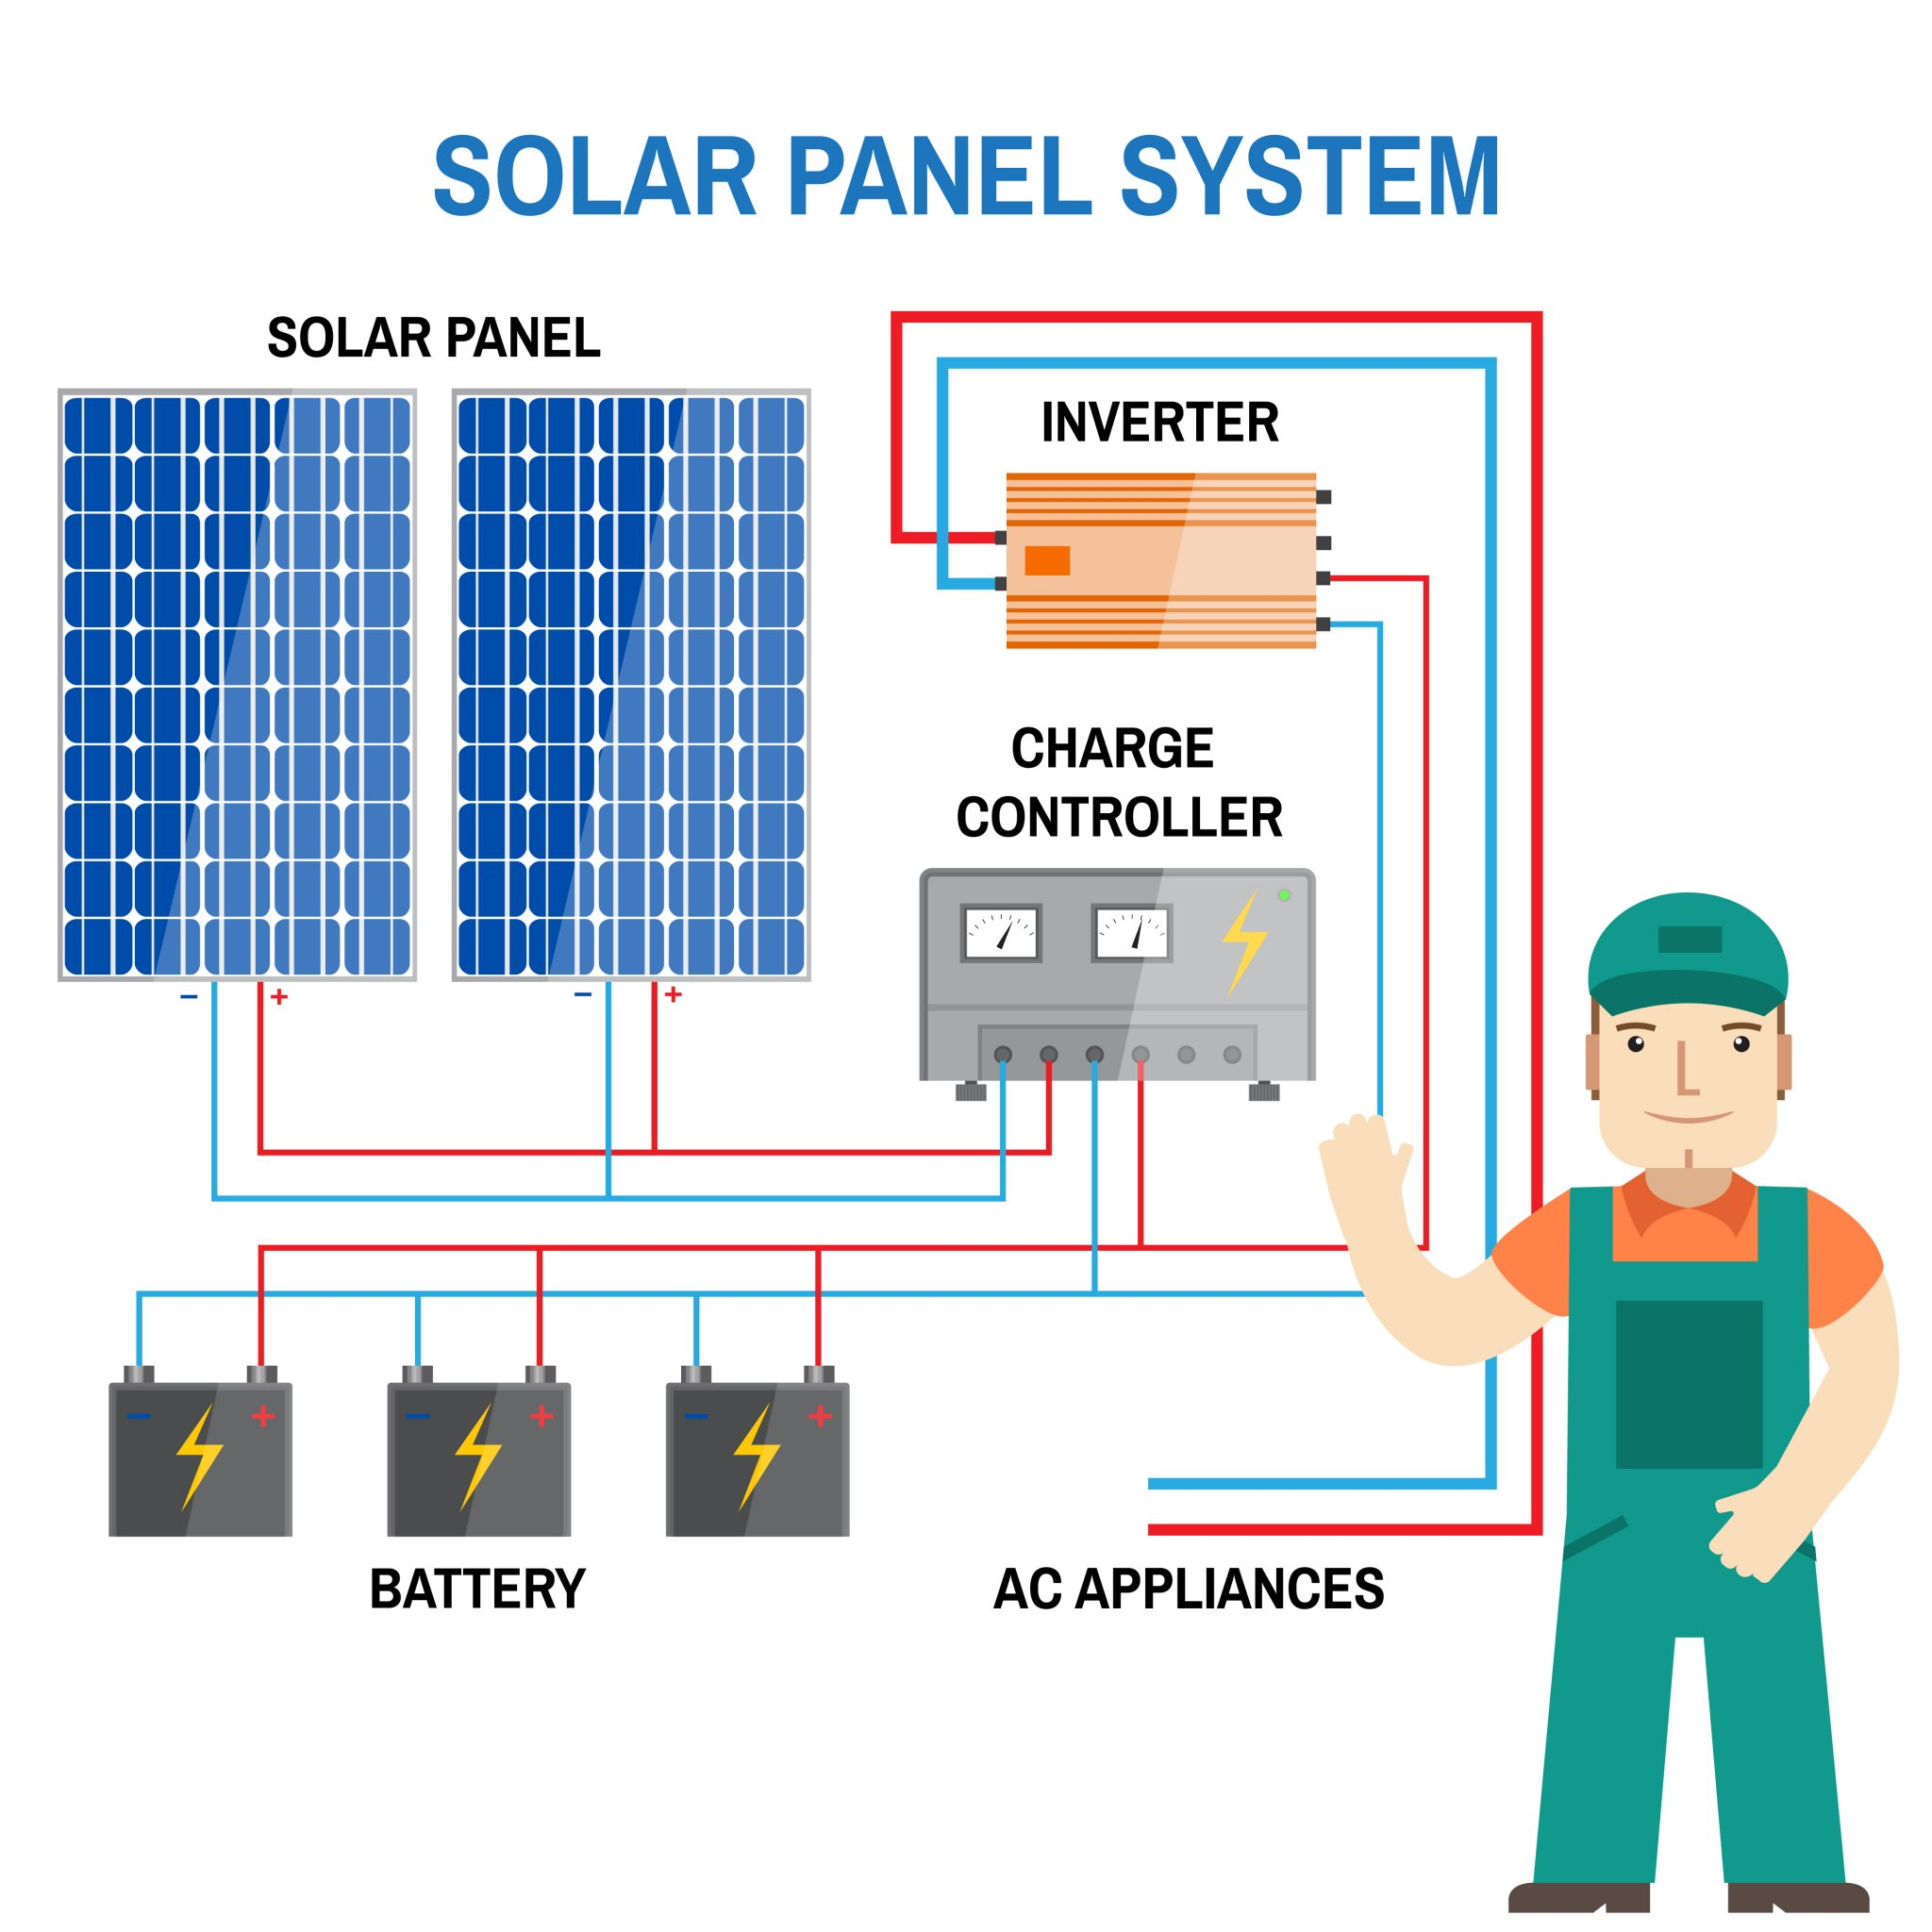 48v battery bank wiring diagram mitsubishi triton mn radio the most important components of a solar pv system (grid-tied and off-grid ...